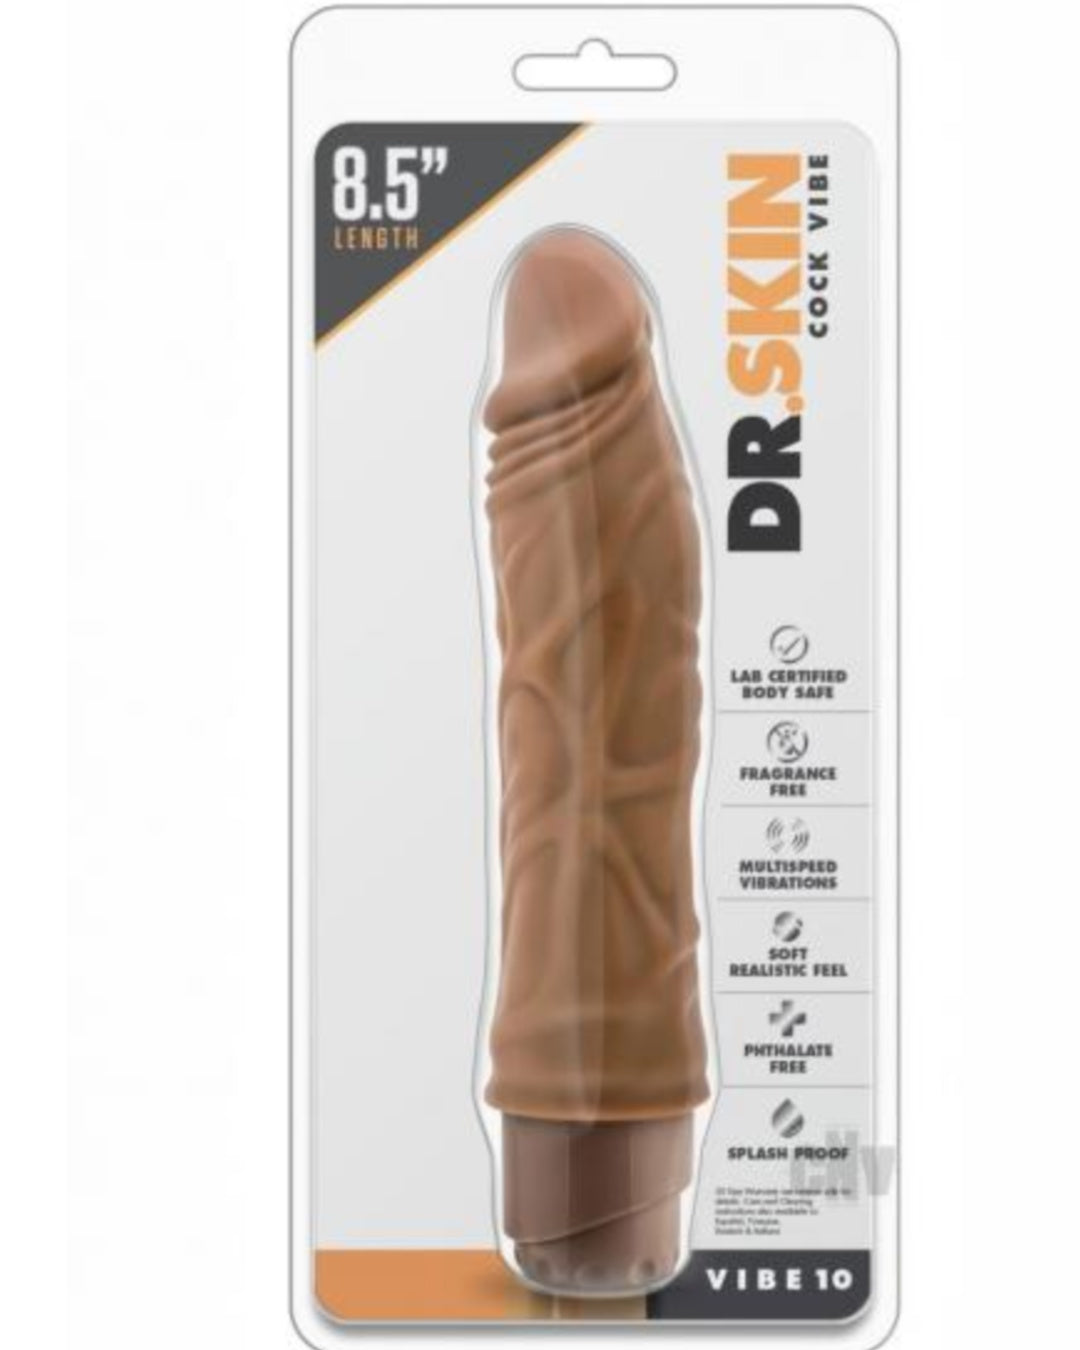 Dr Skin 10 Realistic 8.5 Inch Vibrating Dildo by Blush Novelties - Mocha in Package